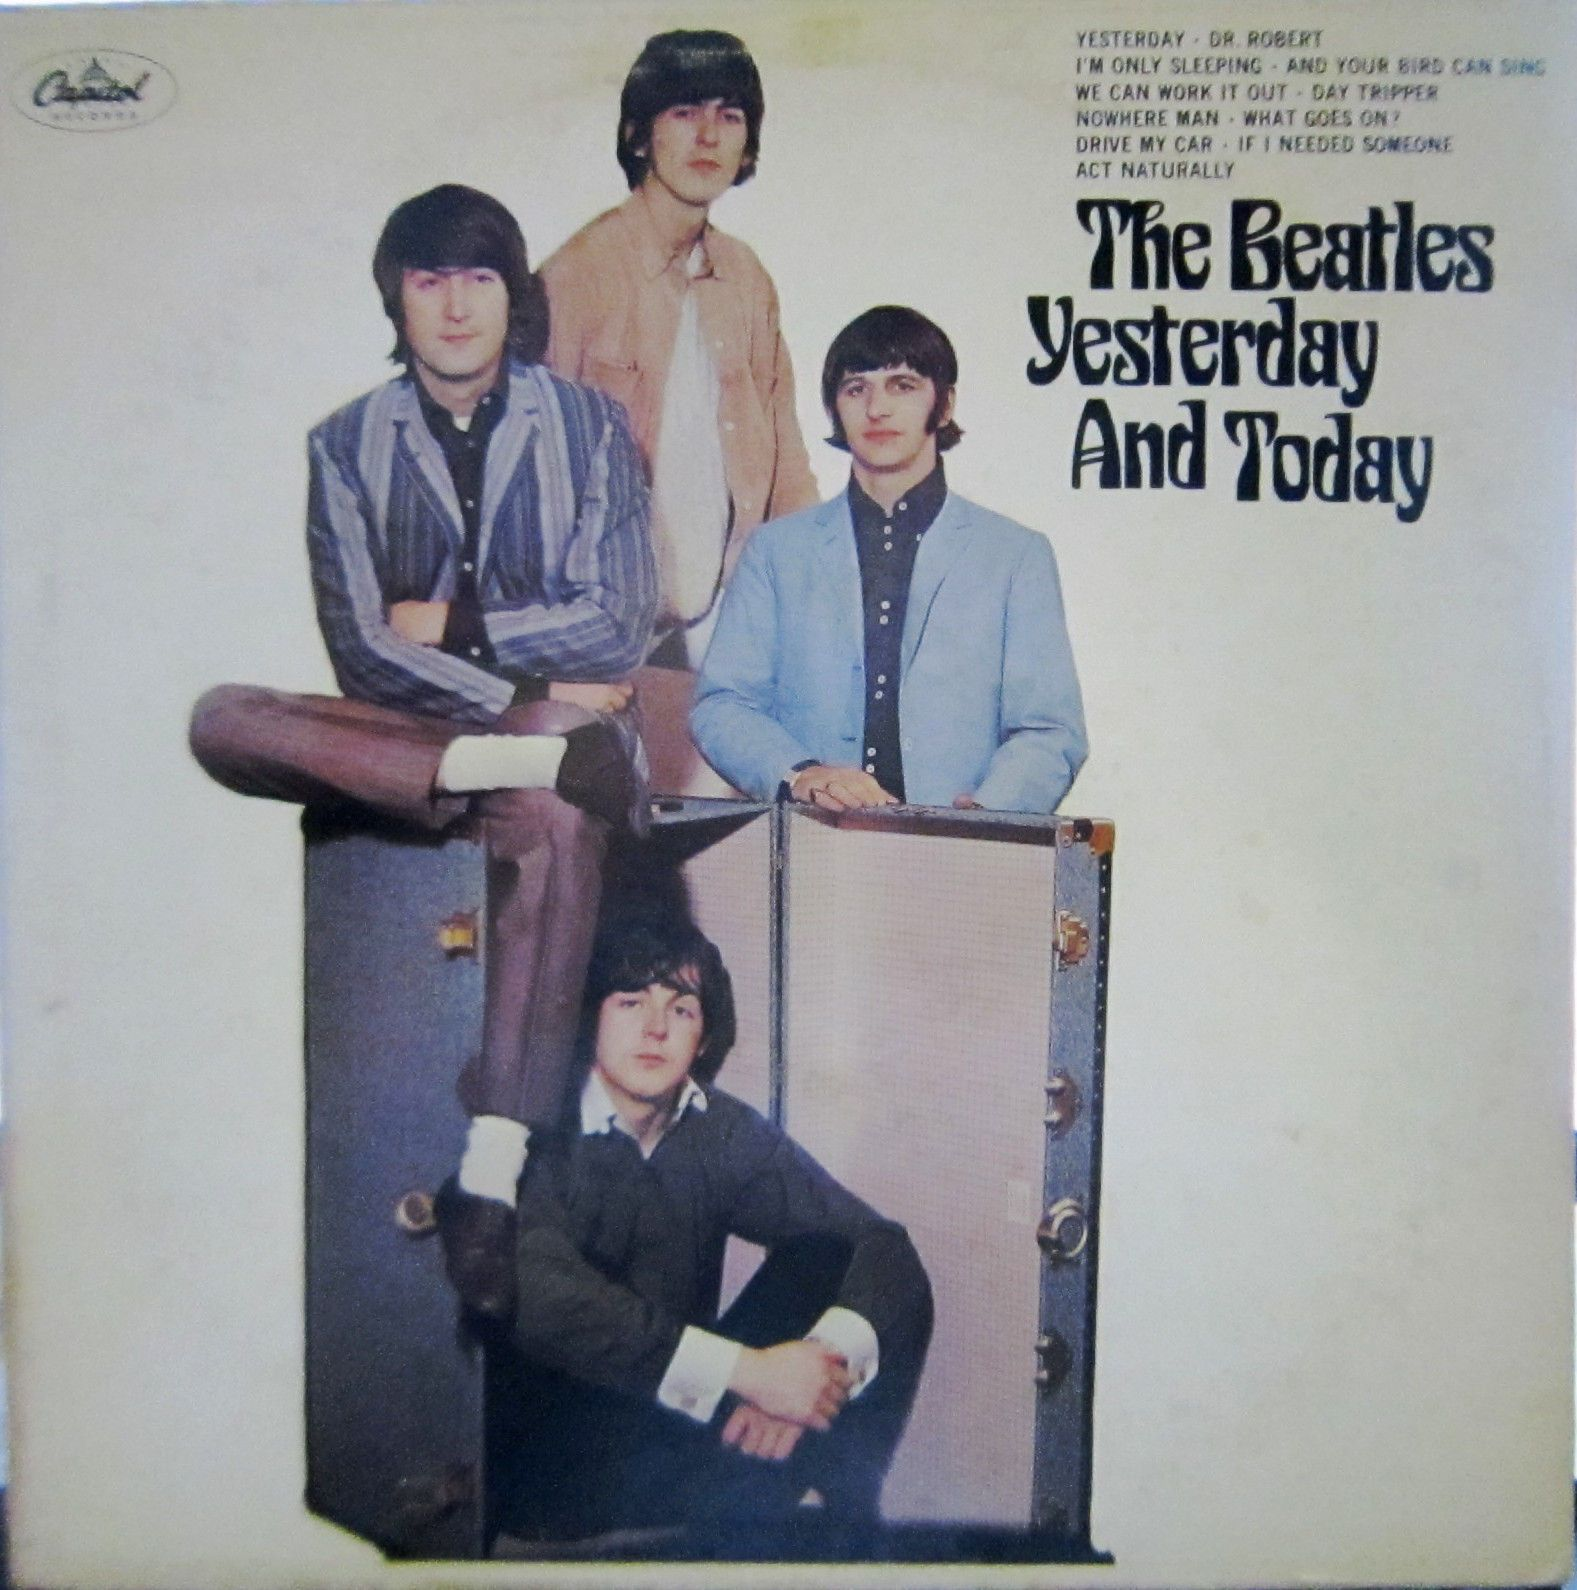 Beatles-Yesterday And Today-BUTCHER COVER-MONO-T2553-VERY NICE